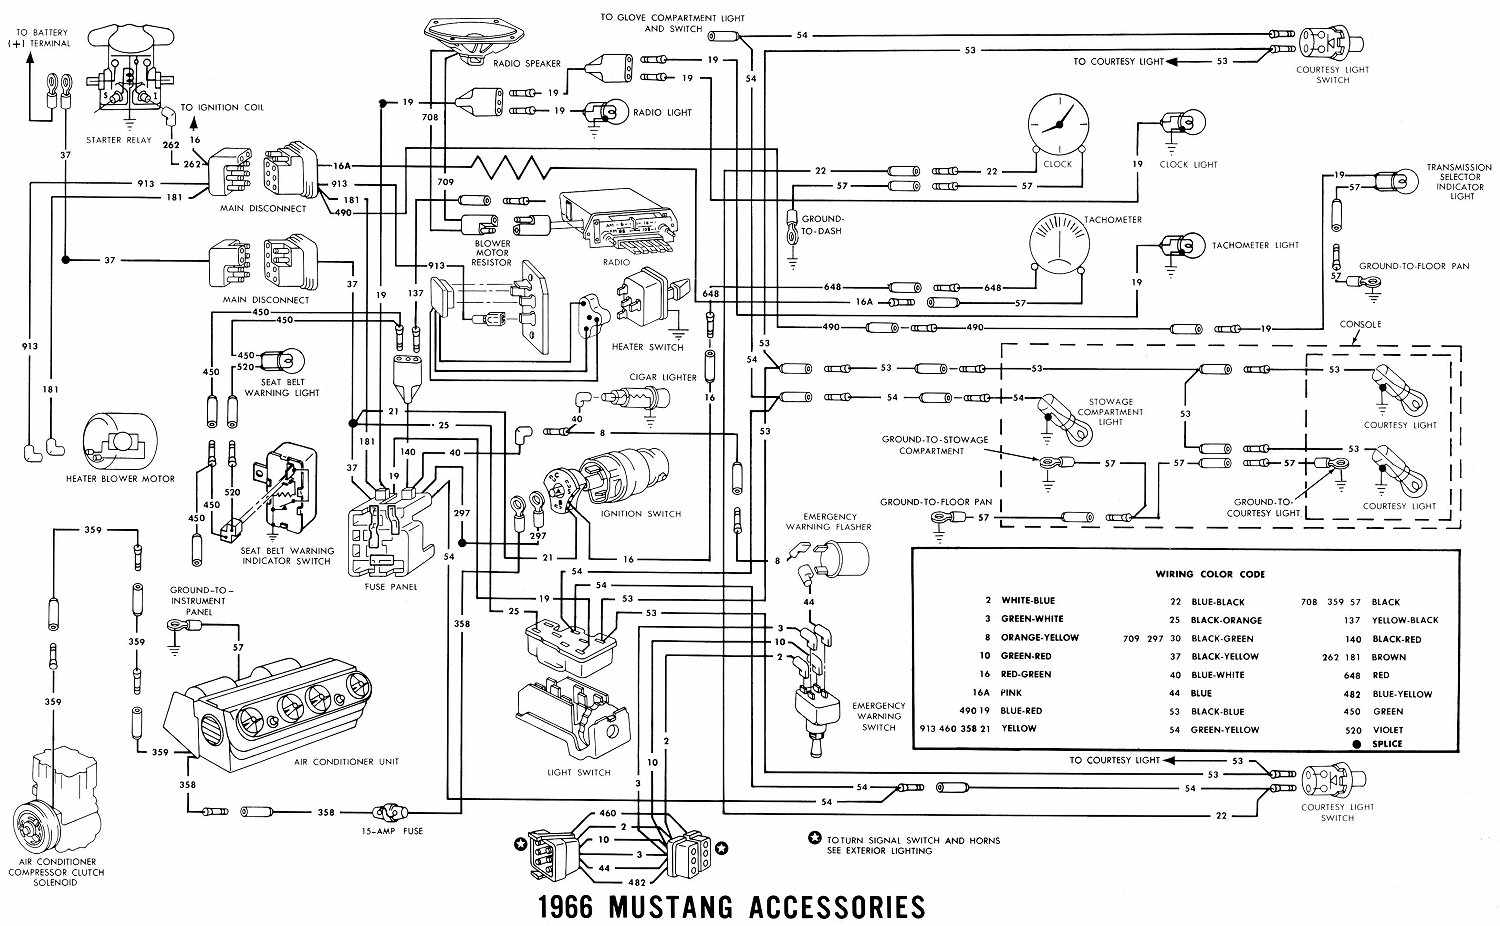 1966 Ford Mustang Accessories Electrical Wiring Diagrams